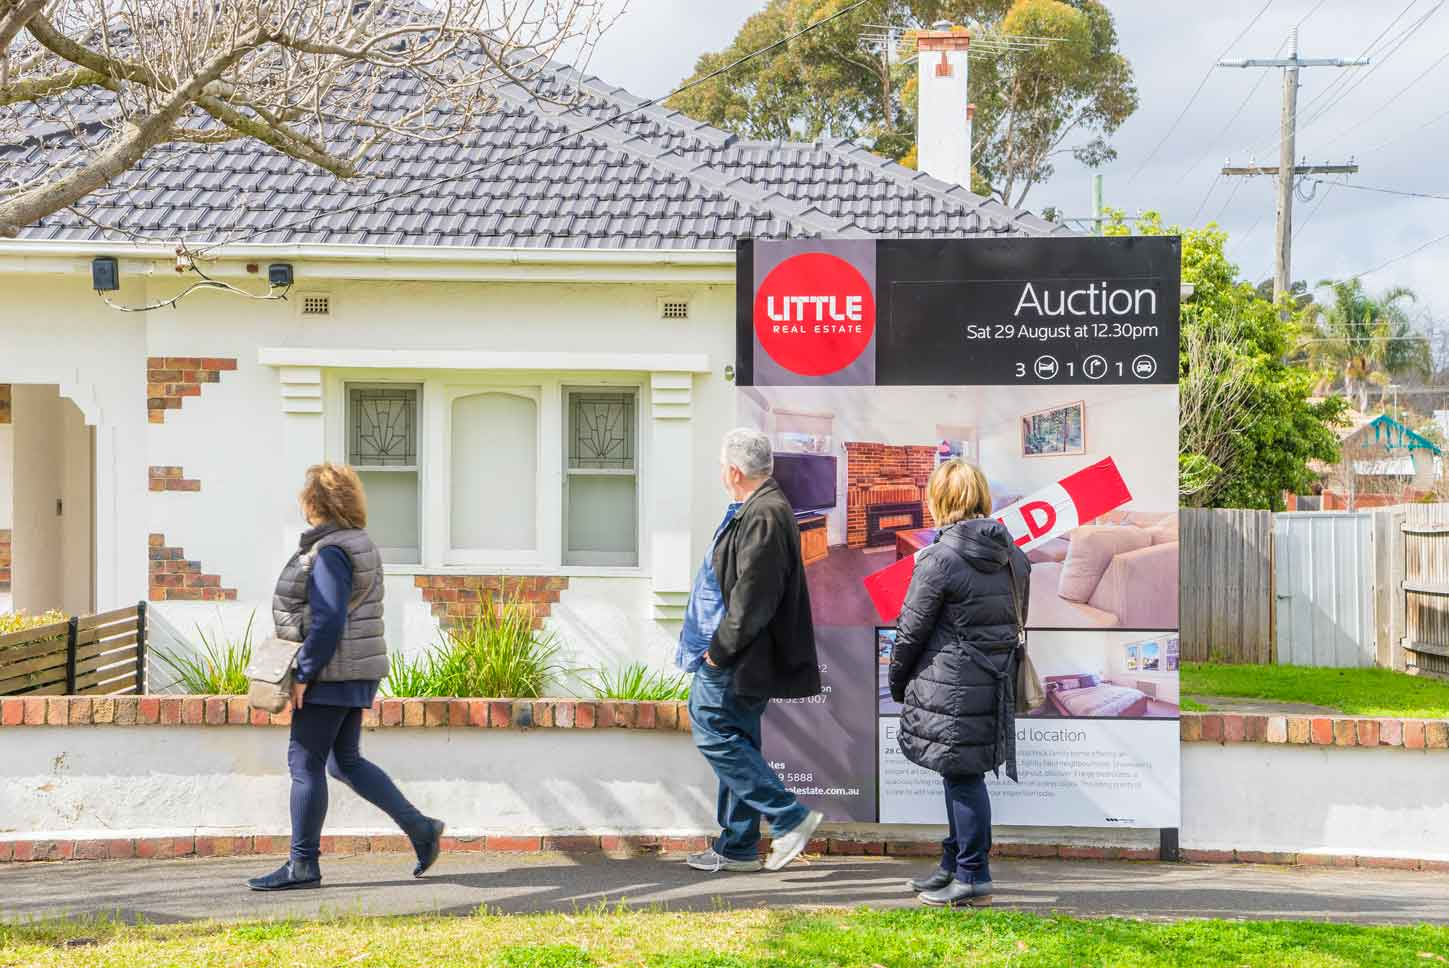 Auction sign on display outside a house in Melbourne